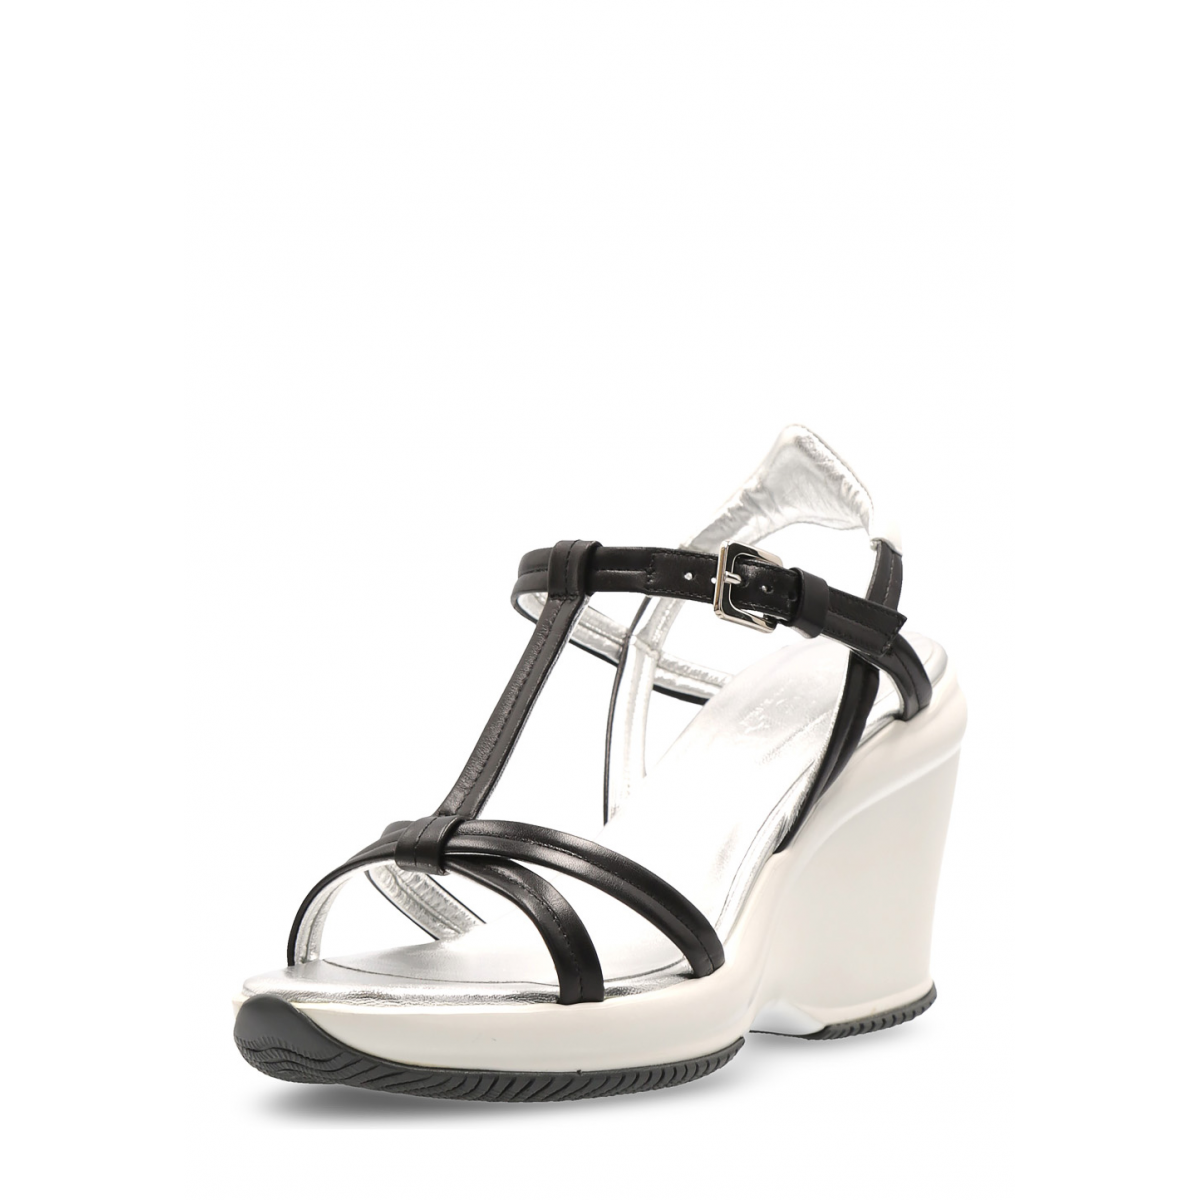 Primary image for Hogan Womens Wedge Sandal Black HXW1460A14033YV3635